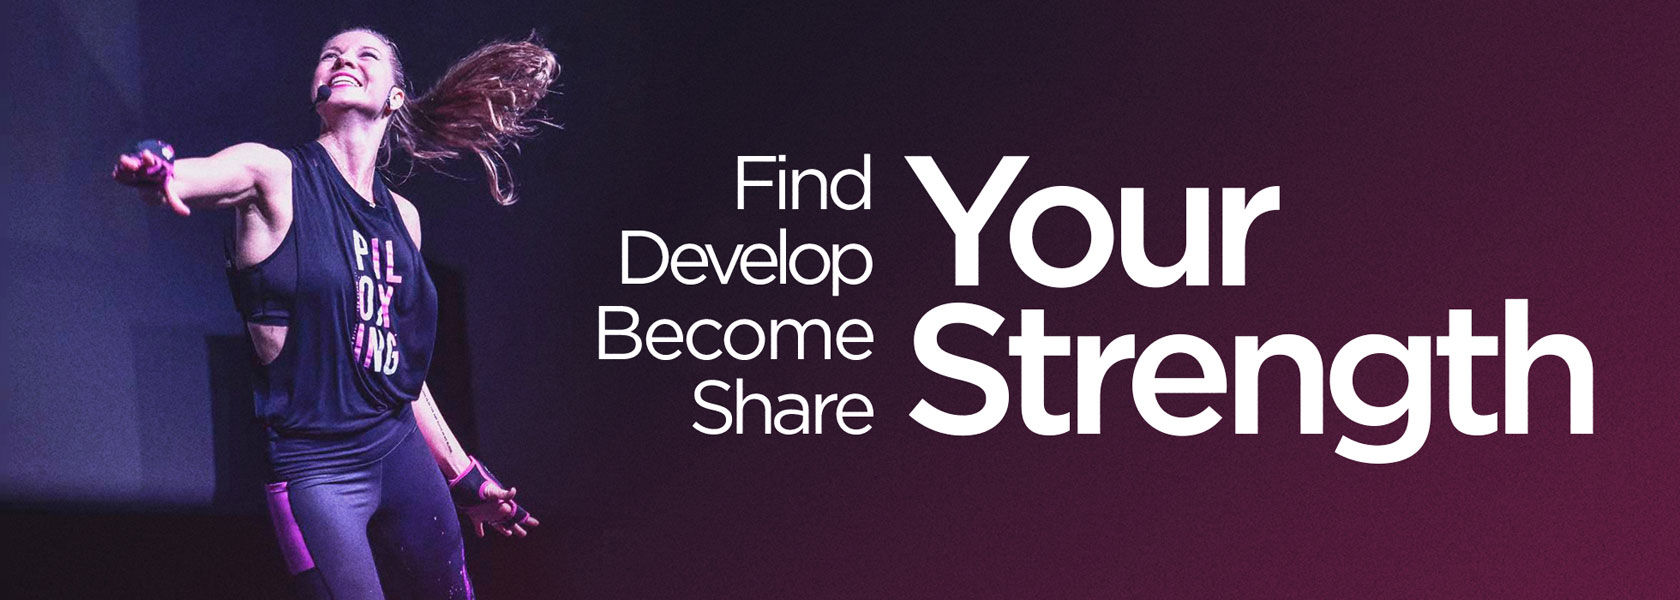 Find, develop, become, share your strength